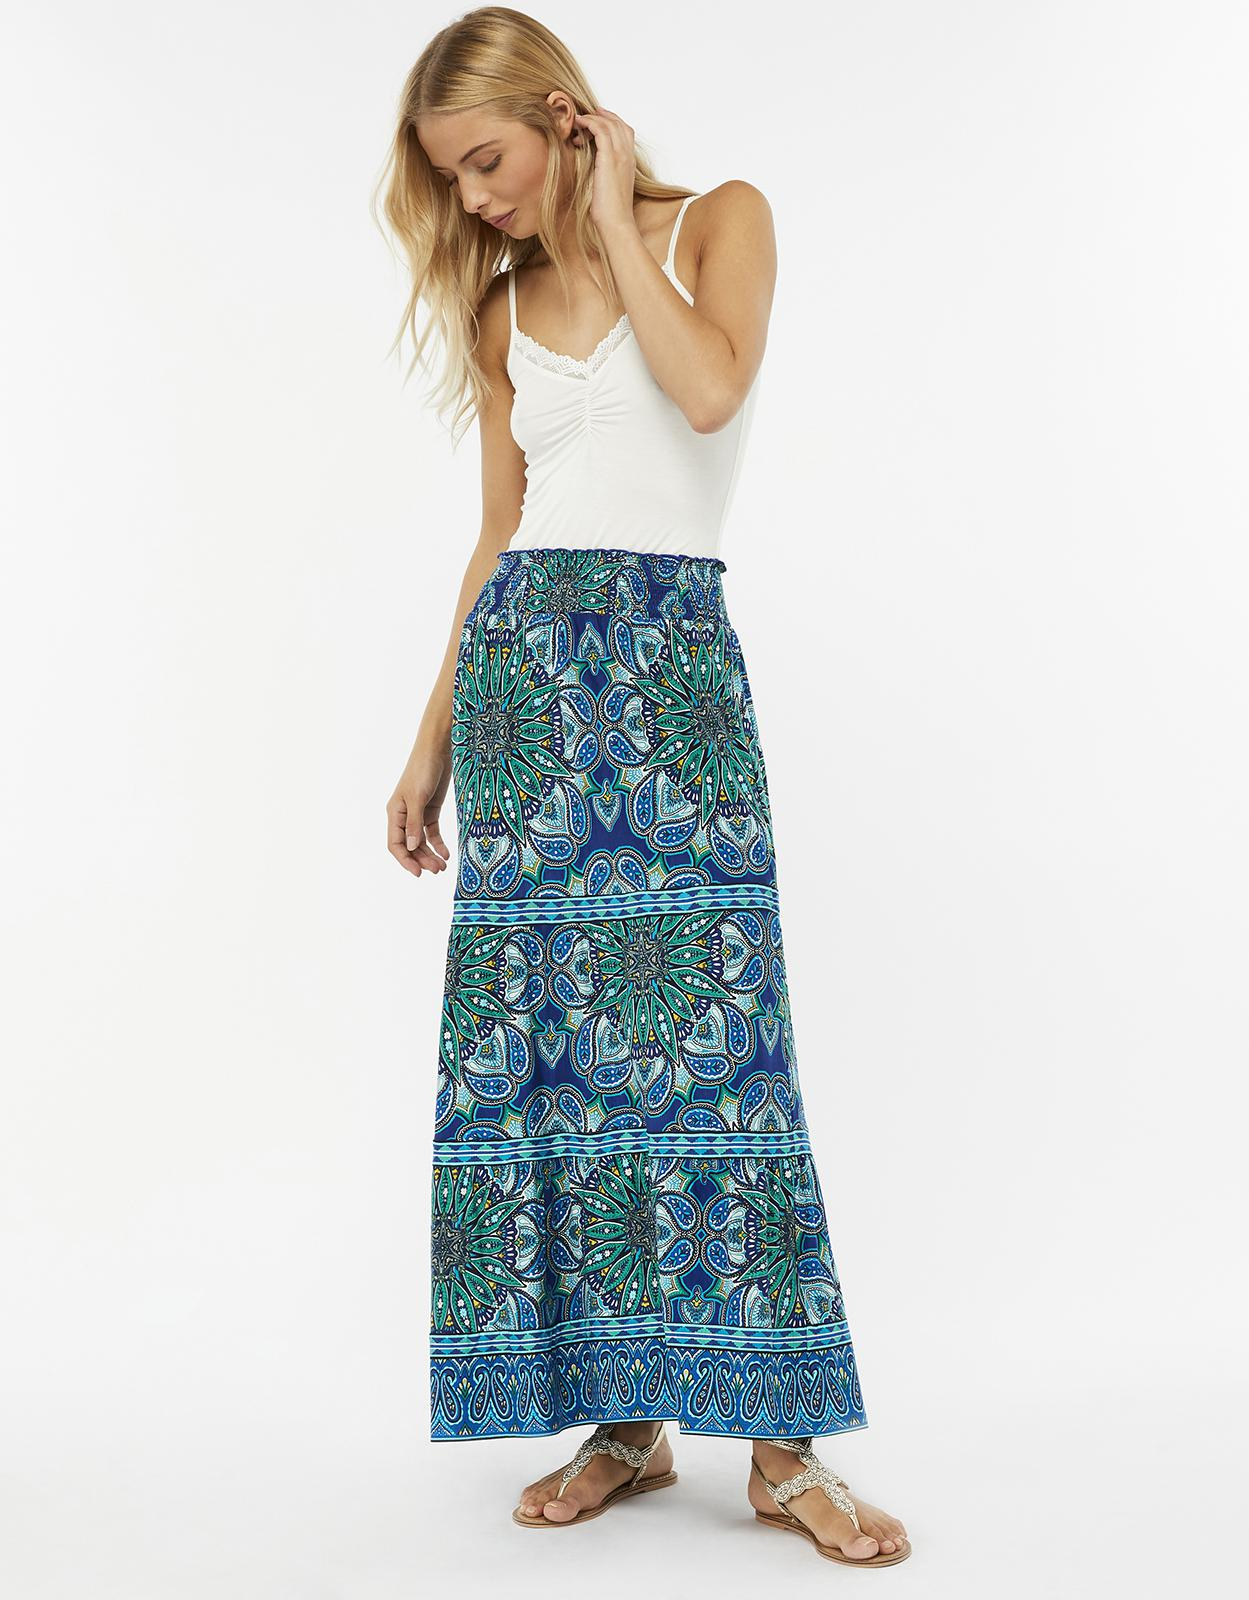 8dd3b21355 Gallery. Previously sold at: Monsoon · Women's Printed Skirts